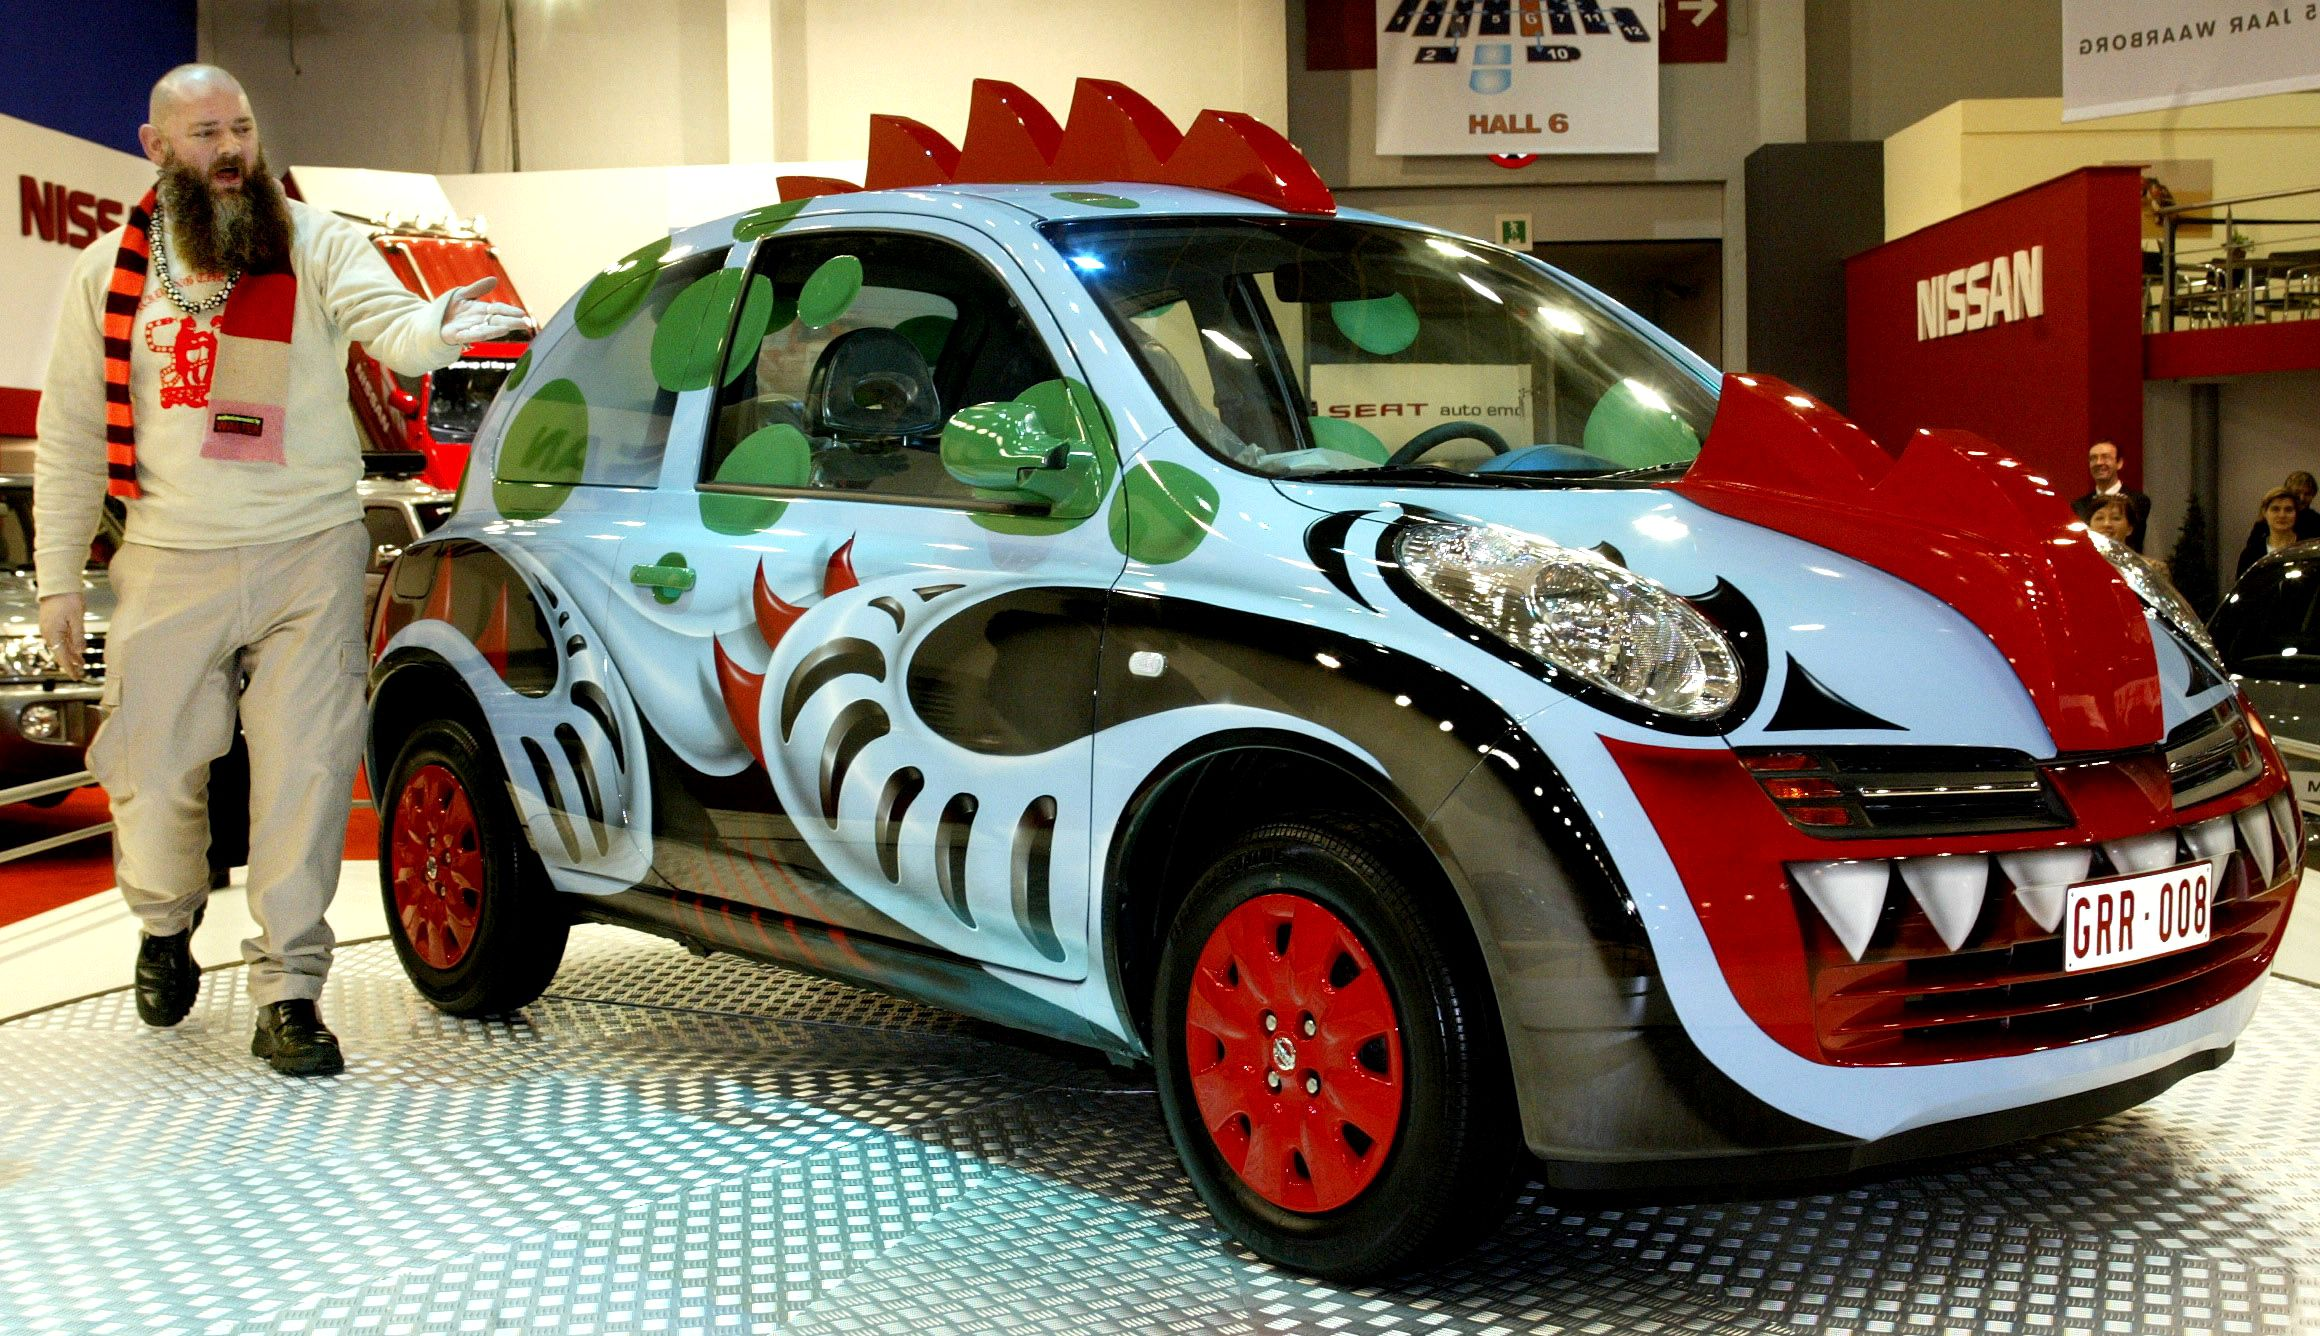 Belgian fashion designer Walter Van Beirendonck launches a customised Nissan Micra at the Brussels International Auto Show on January 13, 2004. The benefits of Van Beirendonck's car sale will be donated to a hospital in the research to fight Aids. The car show, which runs from January 15 to January 25, is expected to attract about 750,000 visitors.